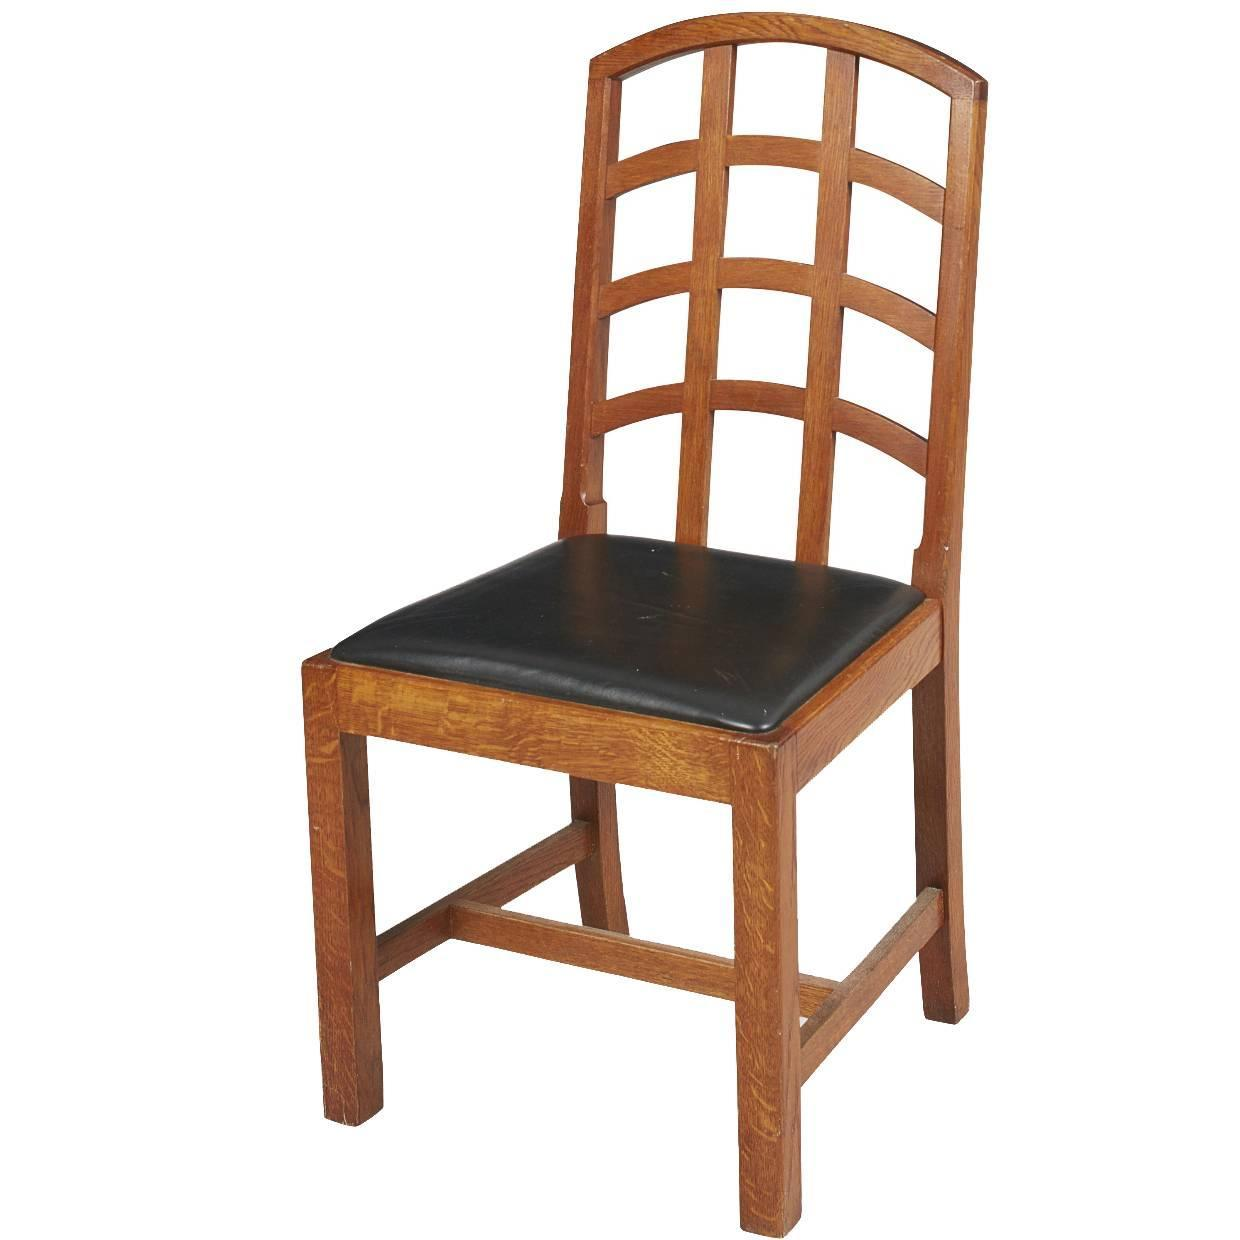 Excellent arts and crafts oak desk chair by heals for sale for Crafting desks for sale